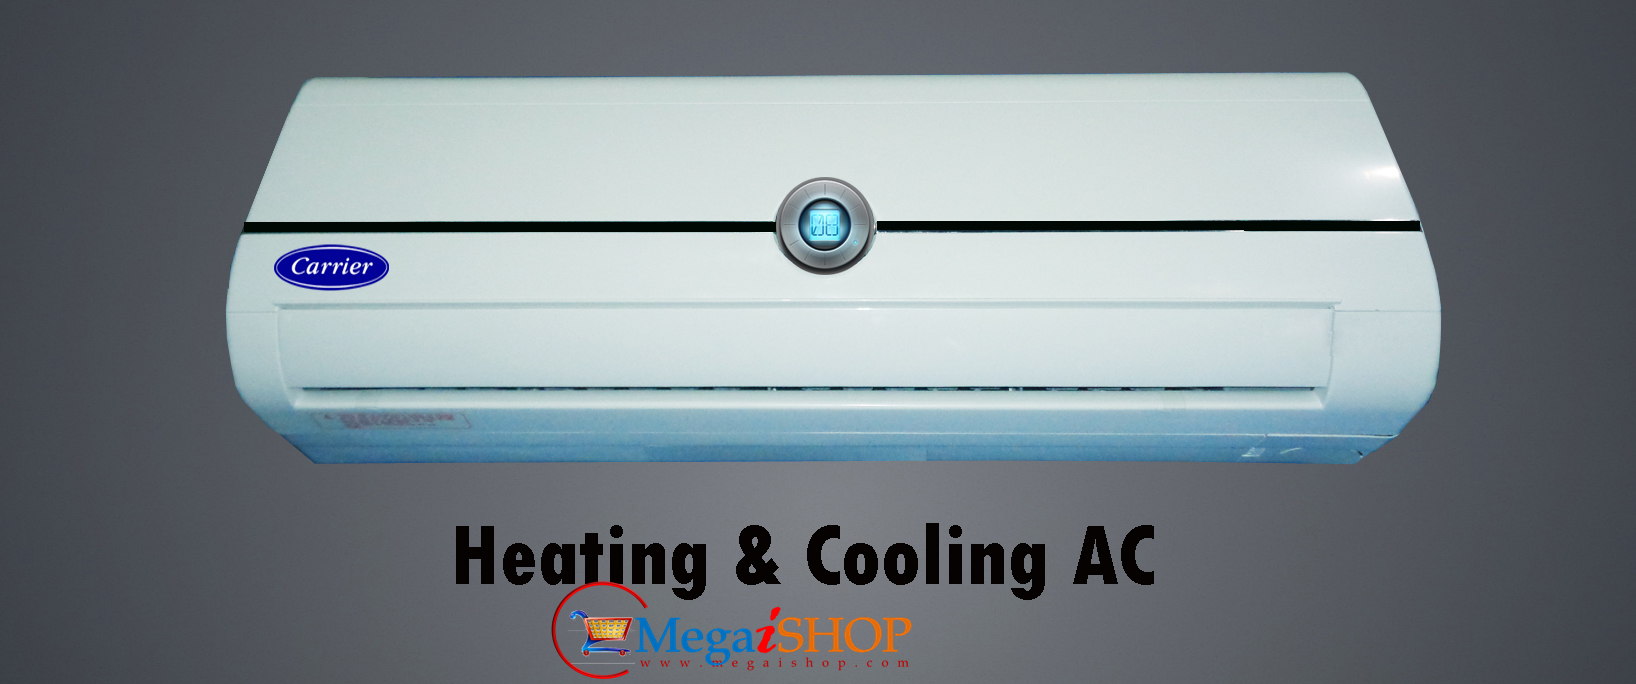 Carrier-Air-conditioer-1.5-ton-Heating-Cooling-4